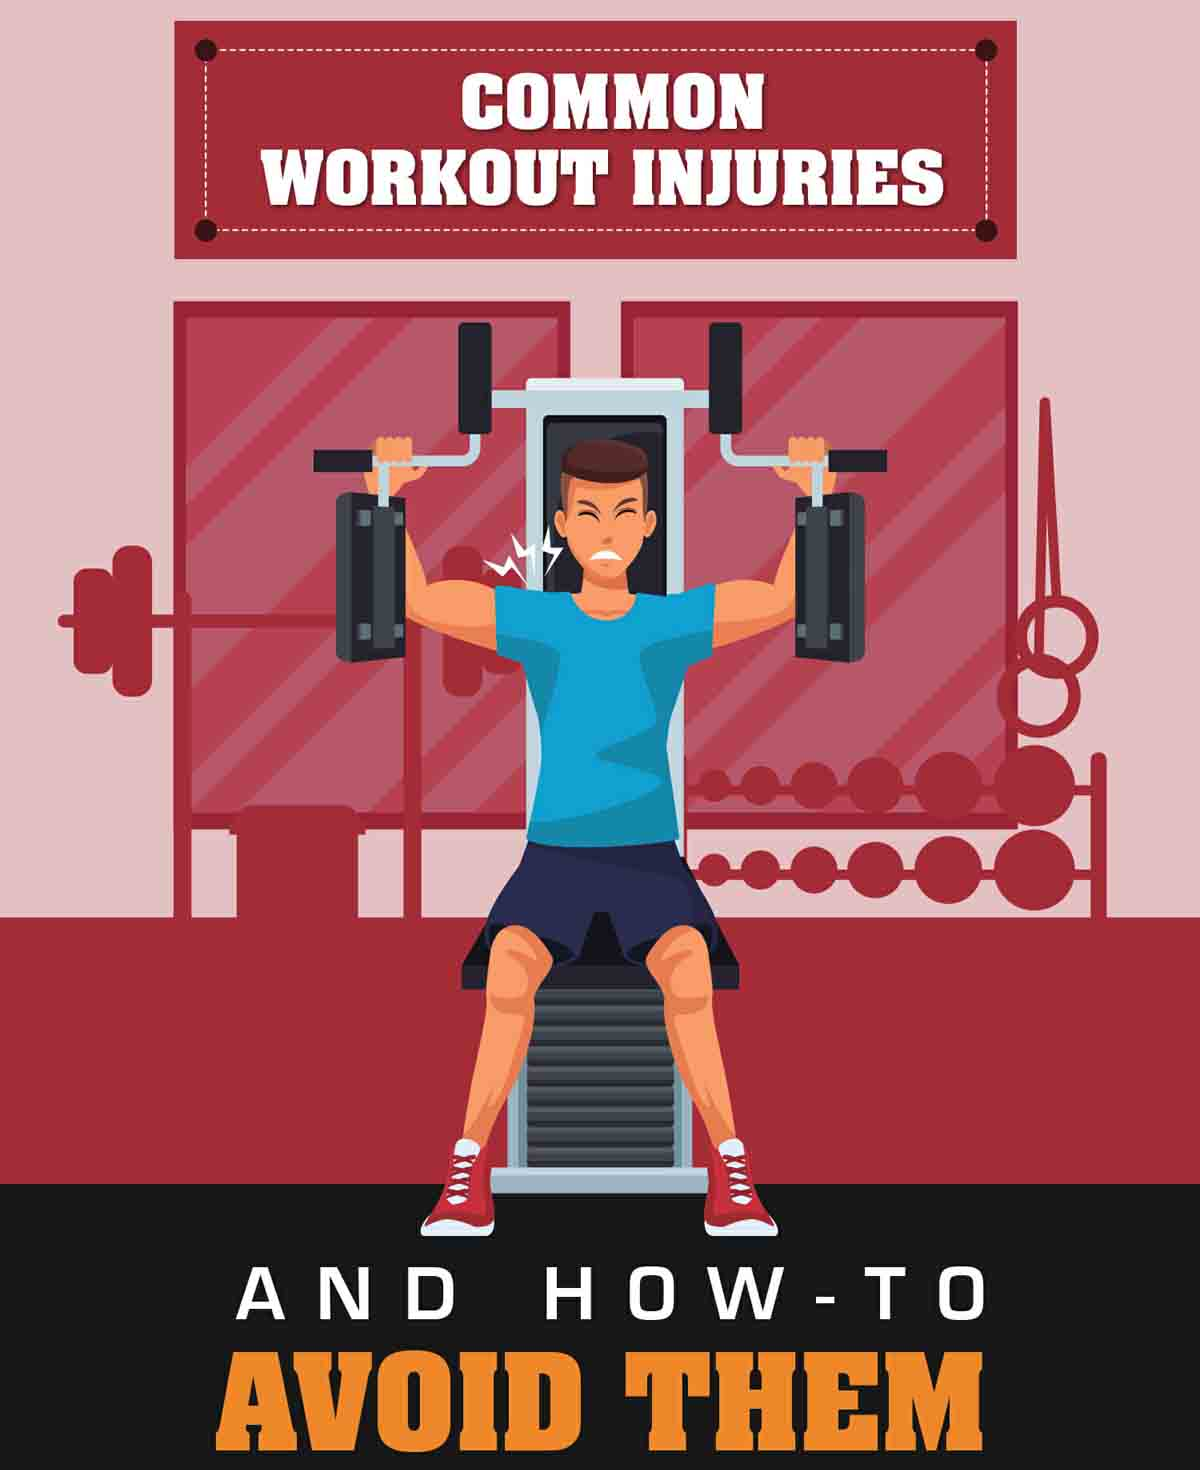 Common Workout Injuries and How-To Avoid Them